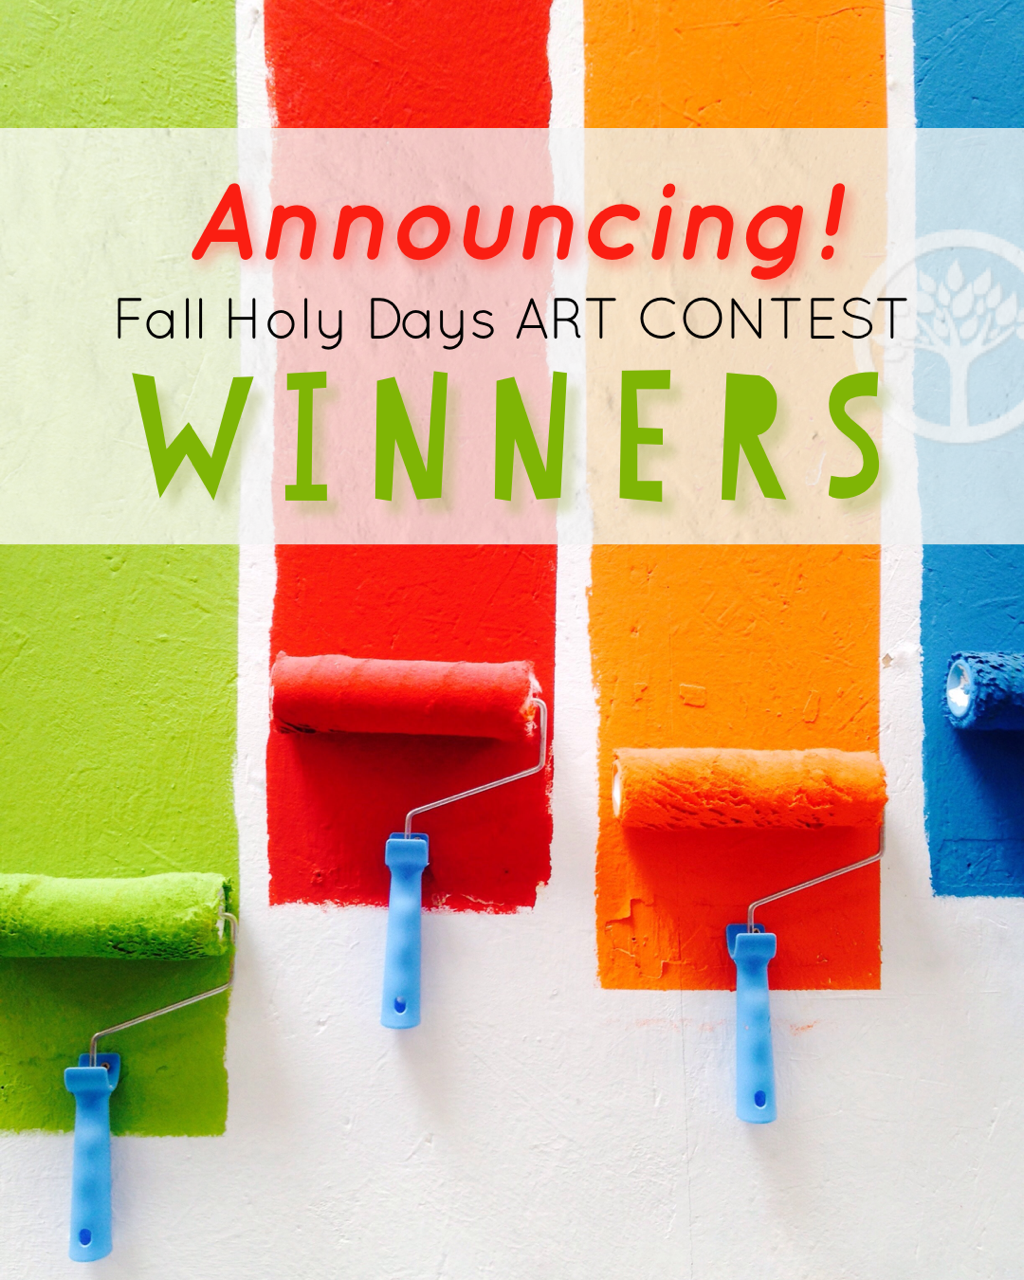 announce art contest winners